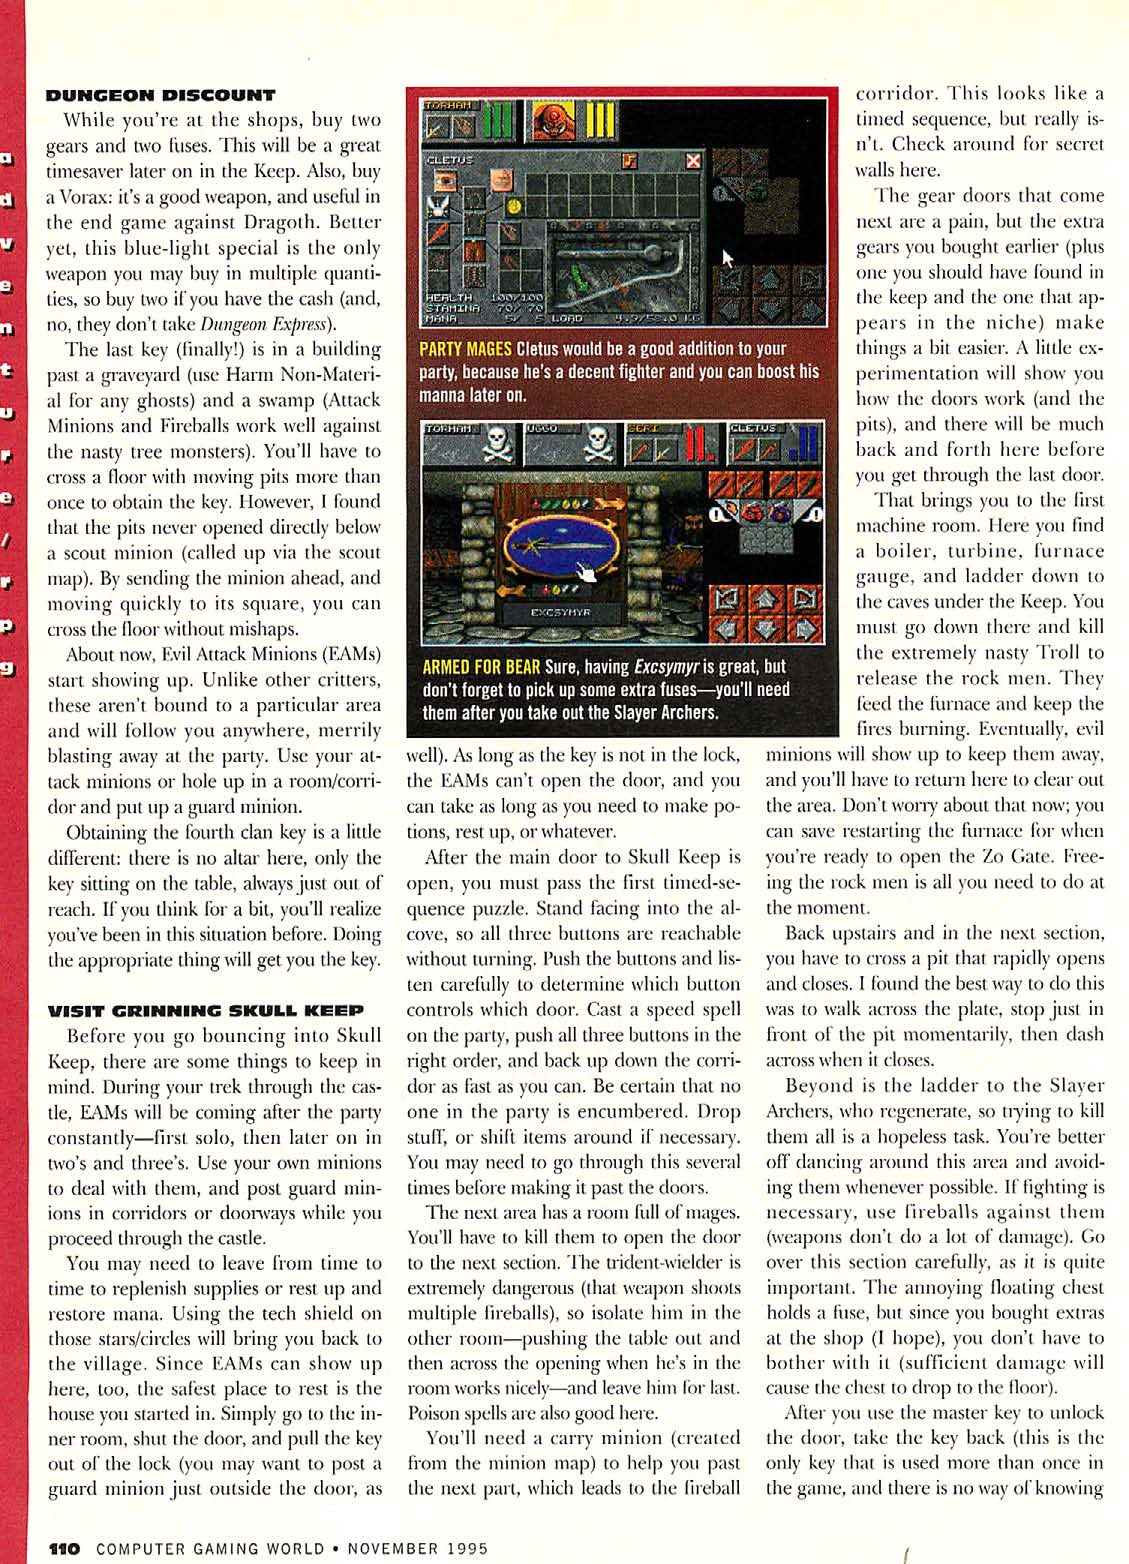 Dungeon Master II Guide published in American magazine 'Computer Gaming World', Issue #136 November 1995, Page 110